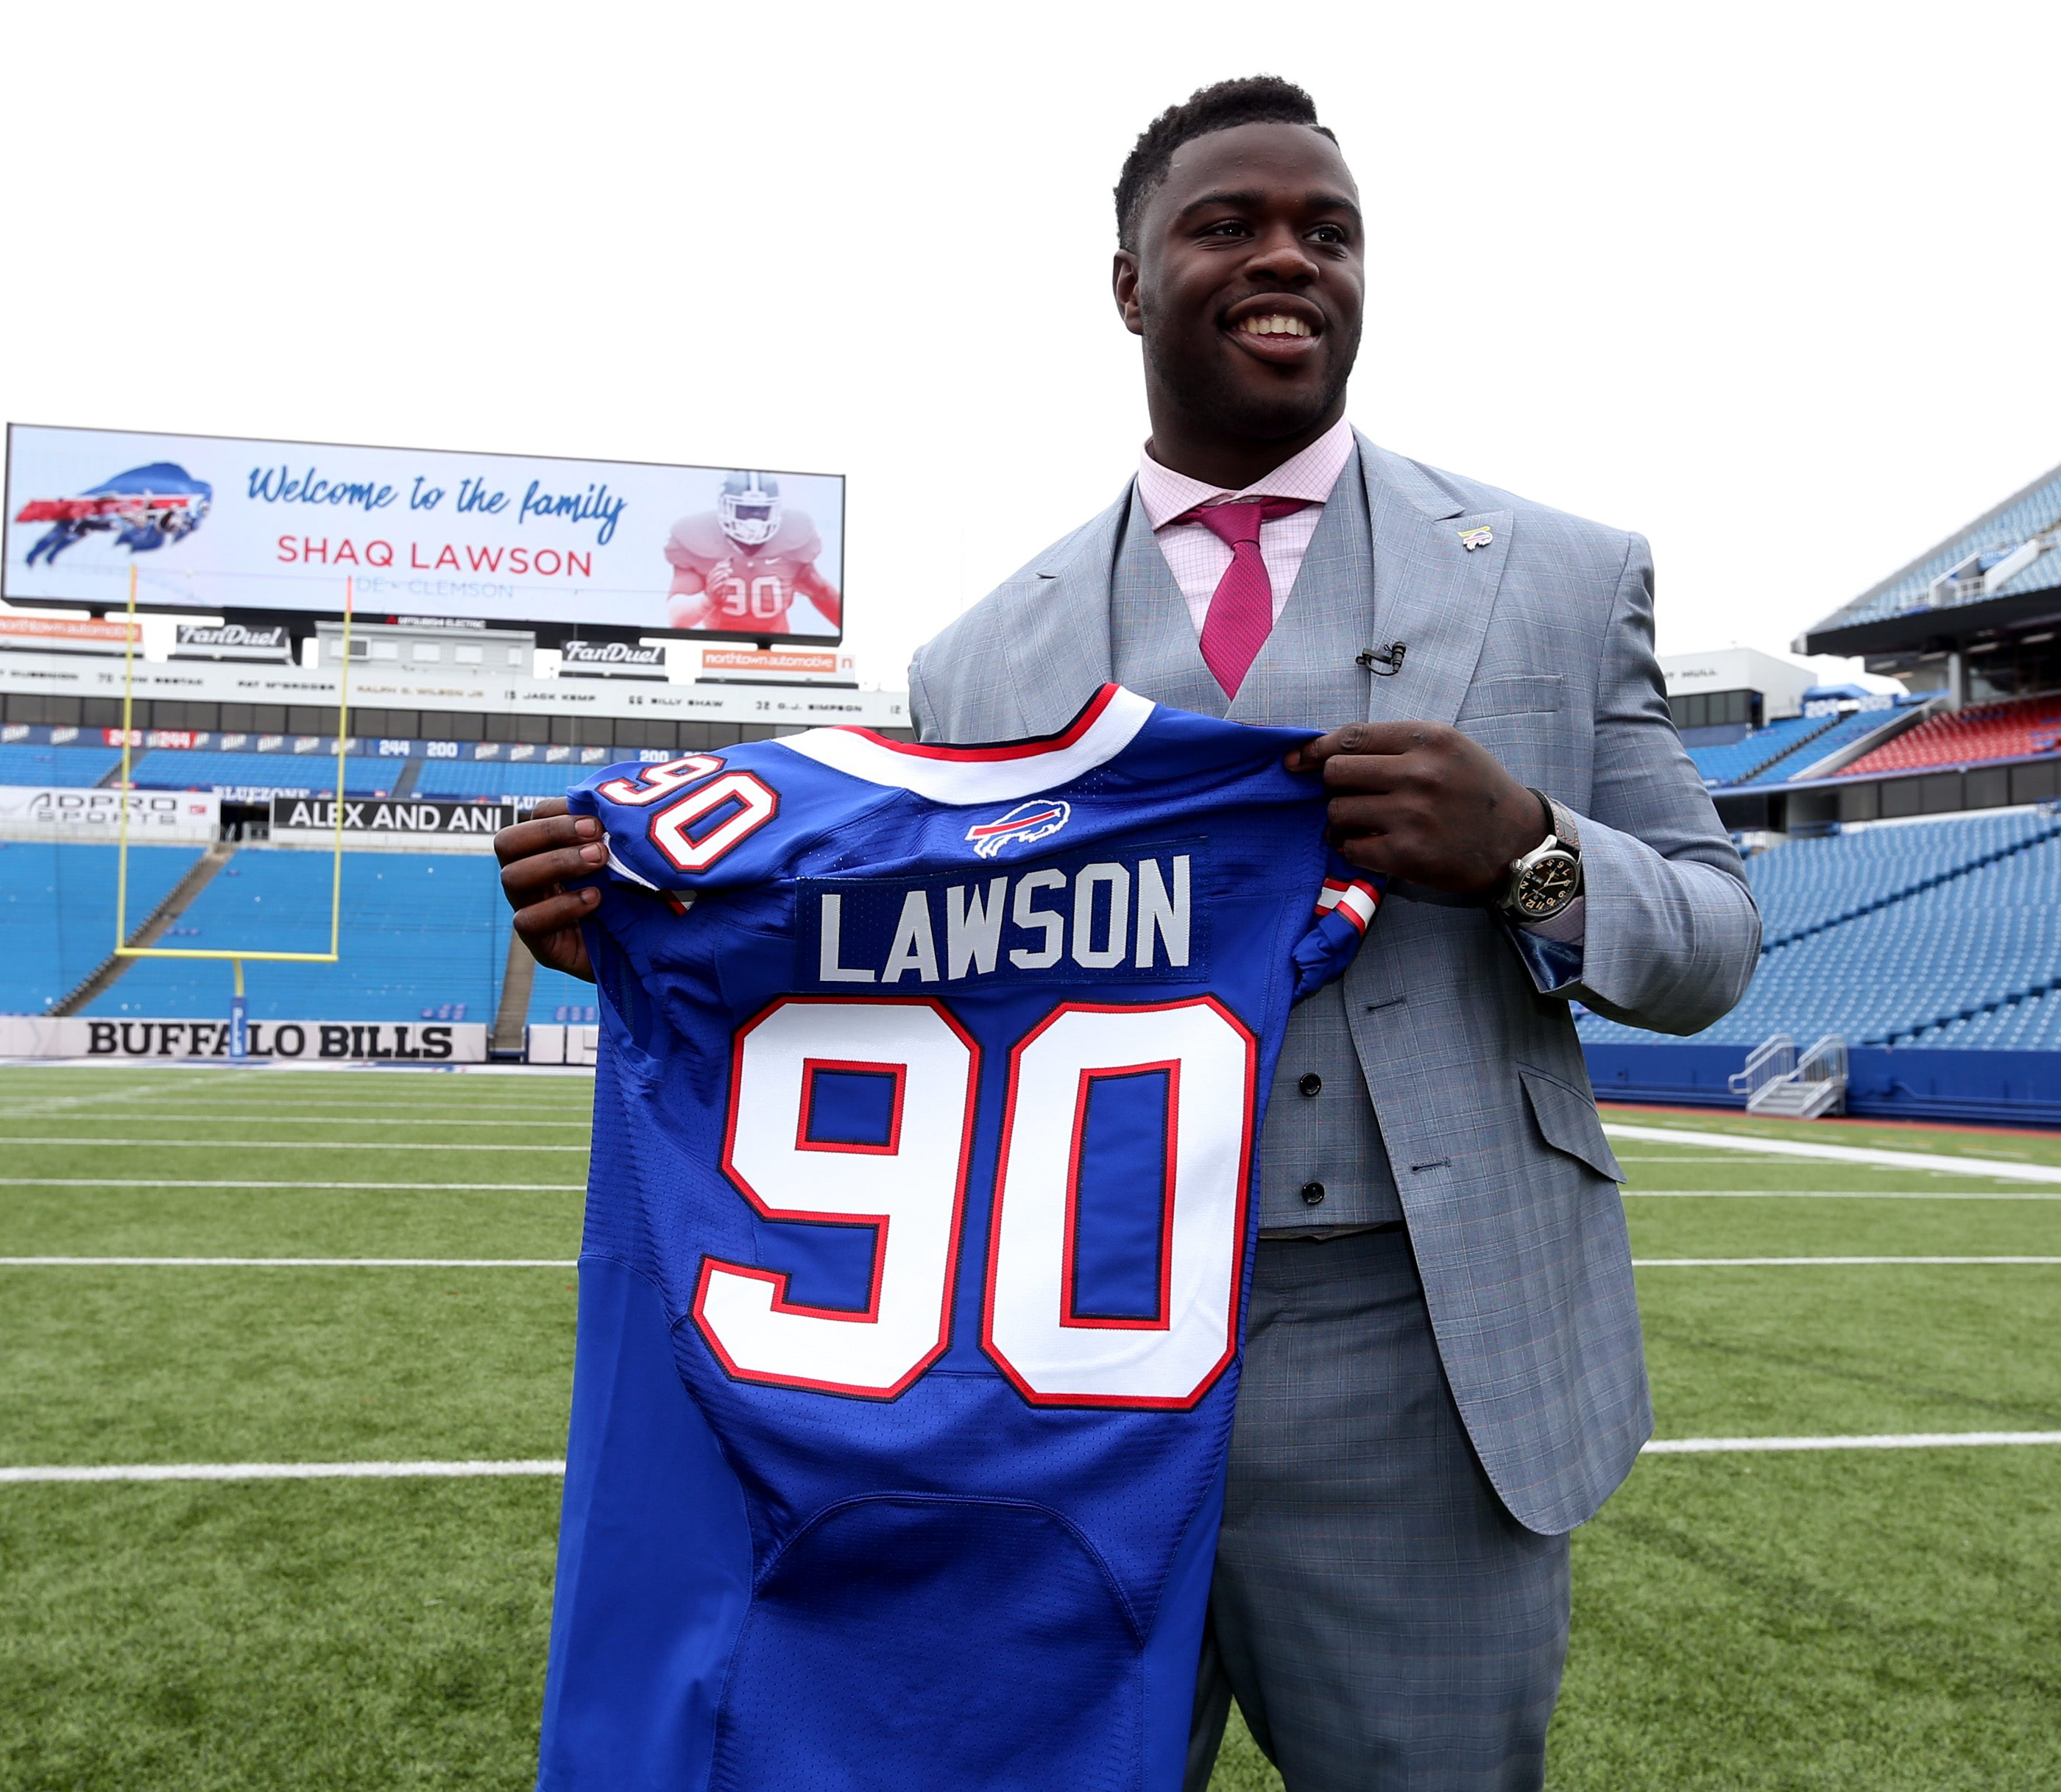 shaq lawson buffalo bills jersey